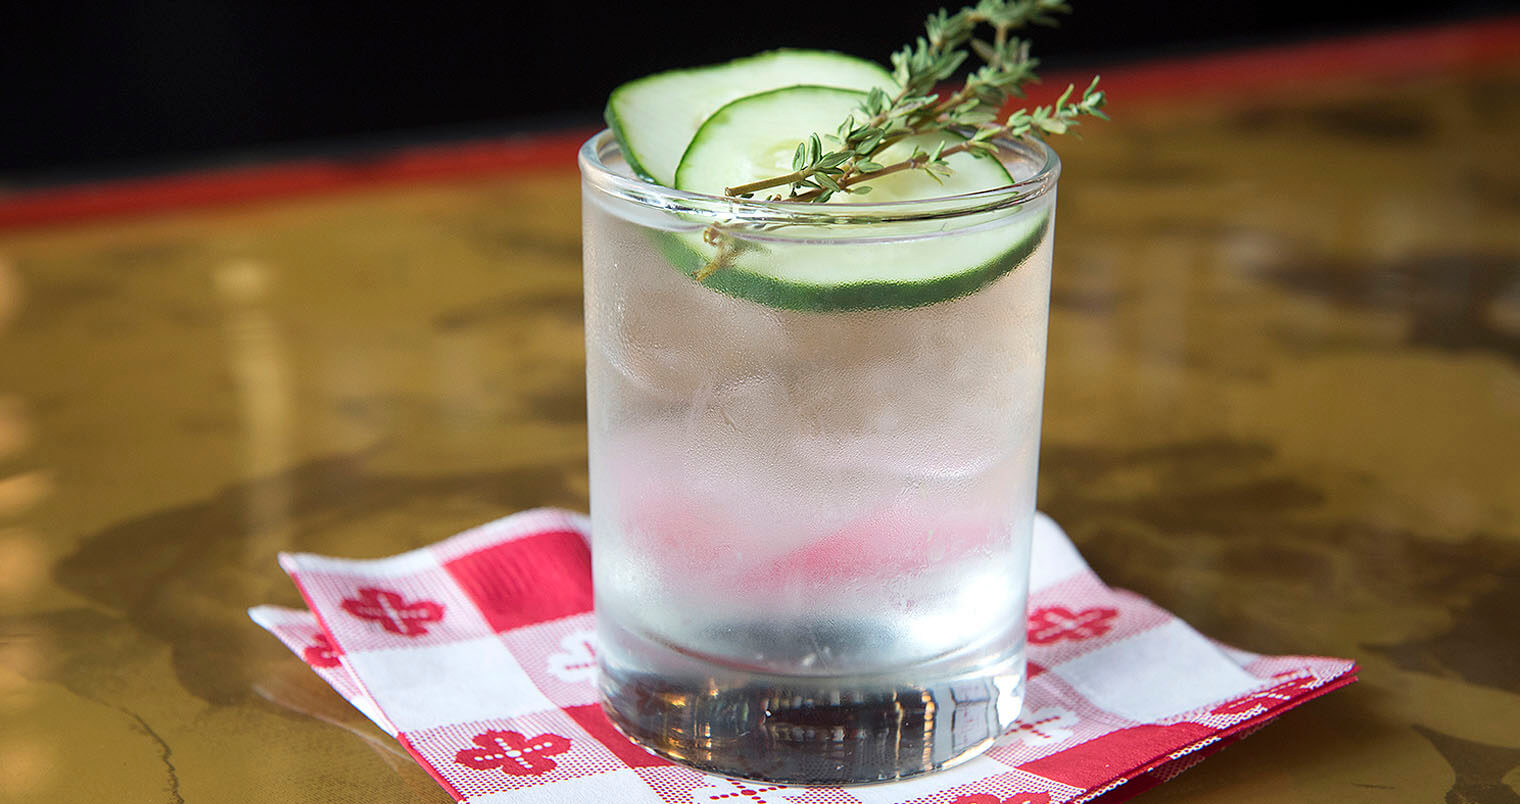 Caorunn Gin Cocktails for World Gin Day - June 13th, 2015